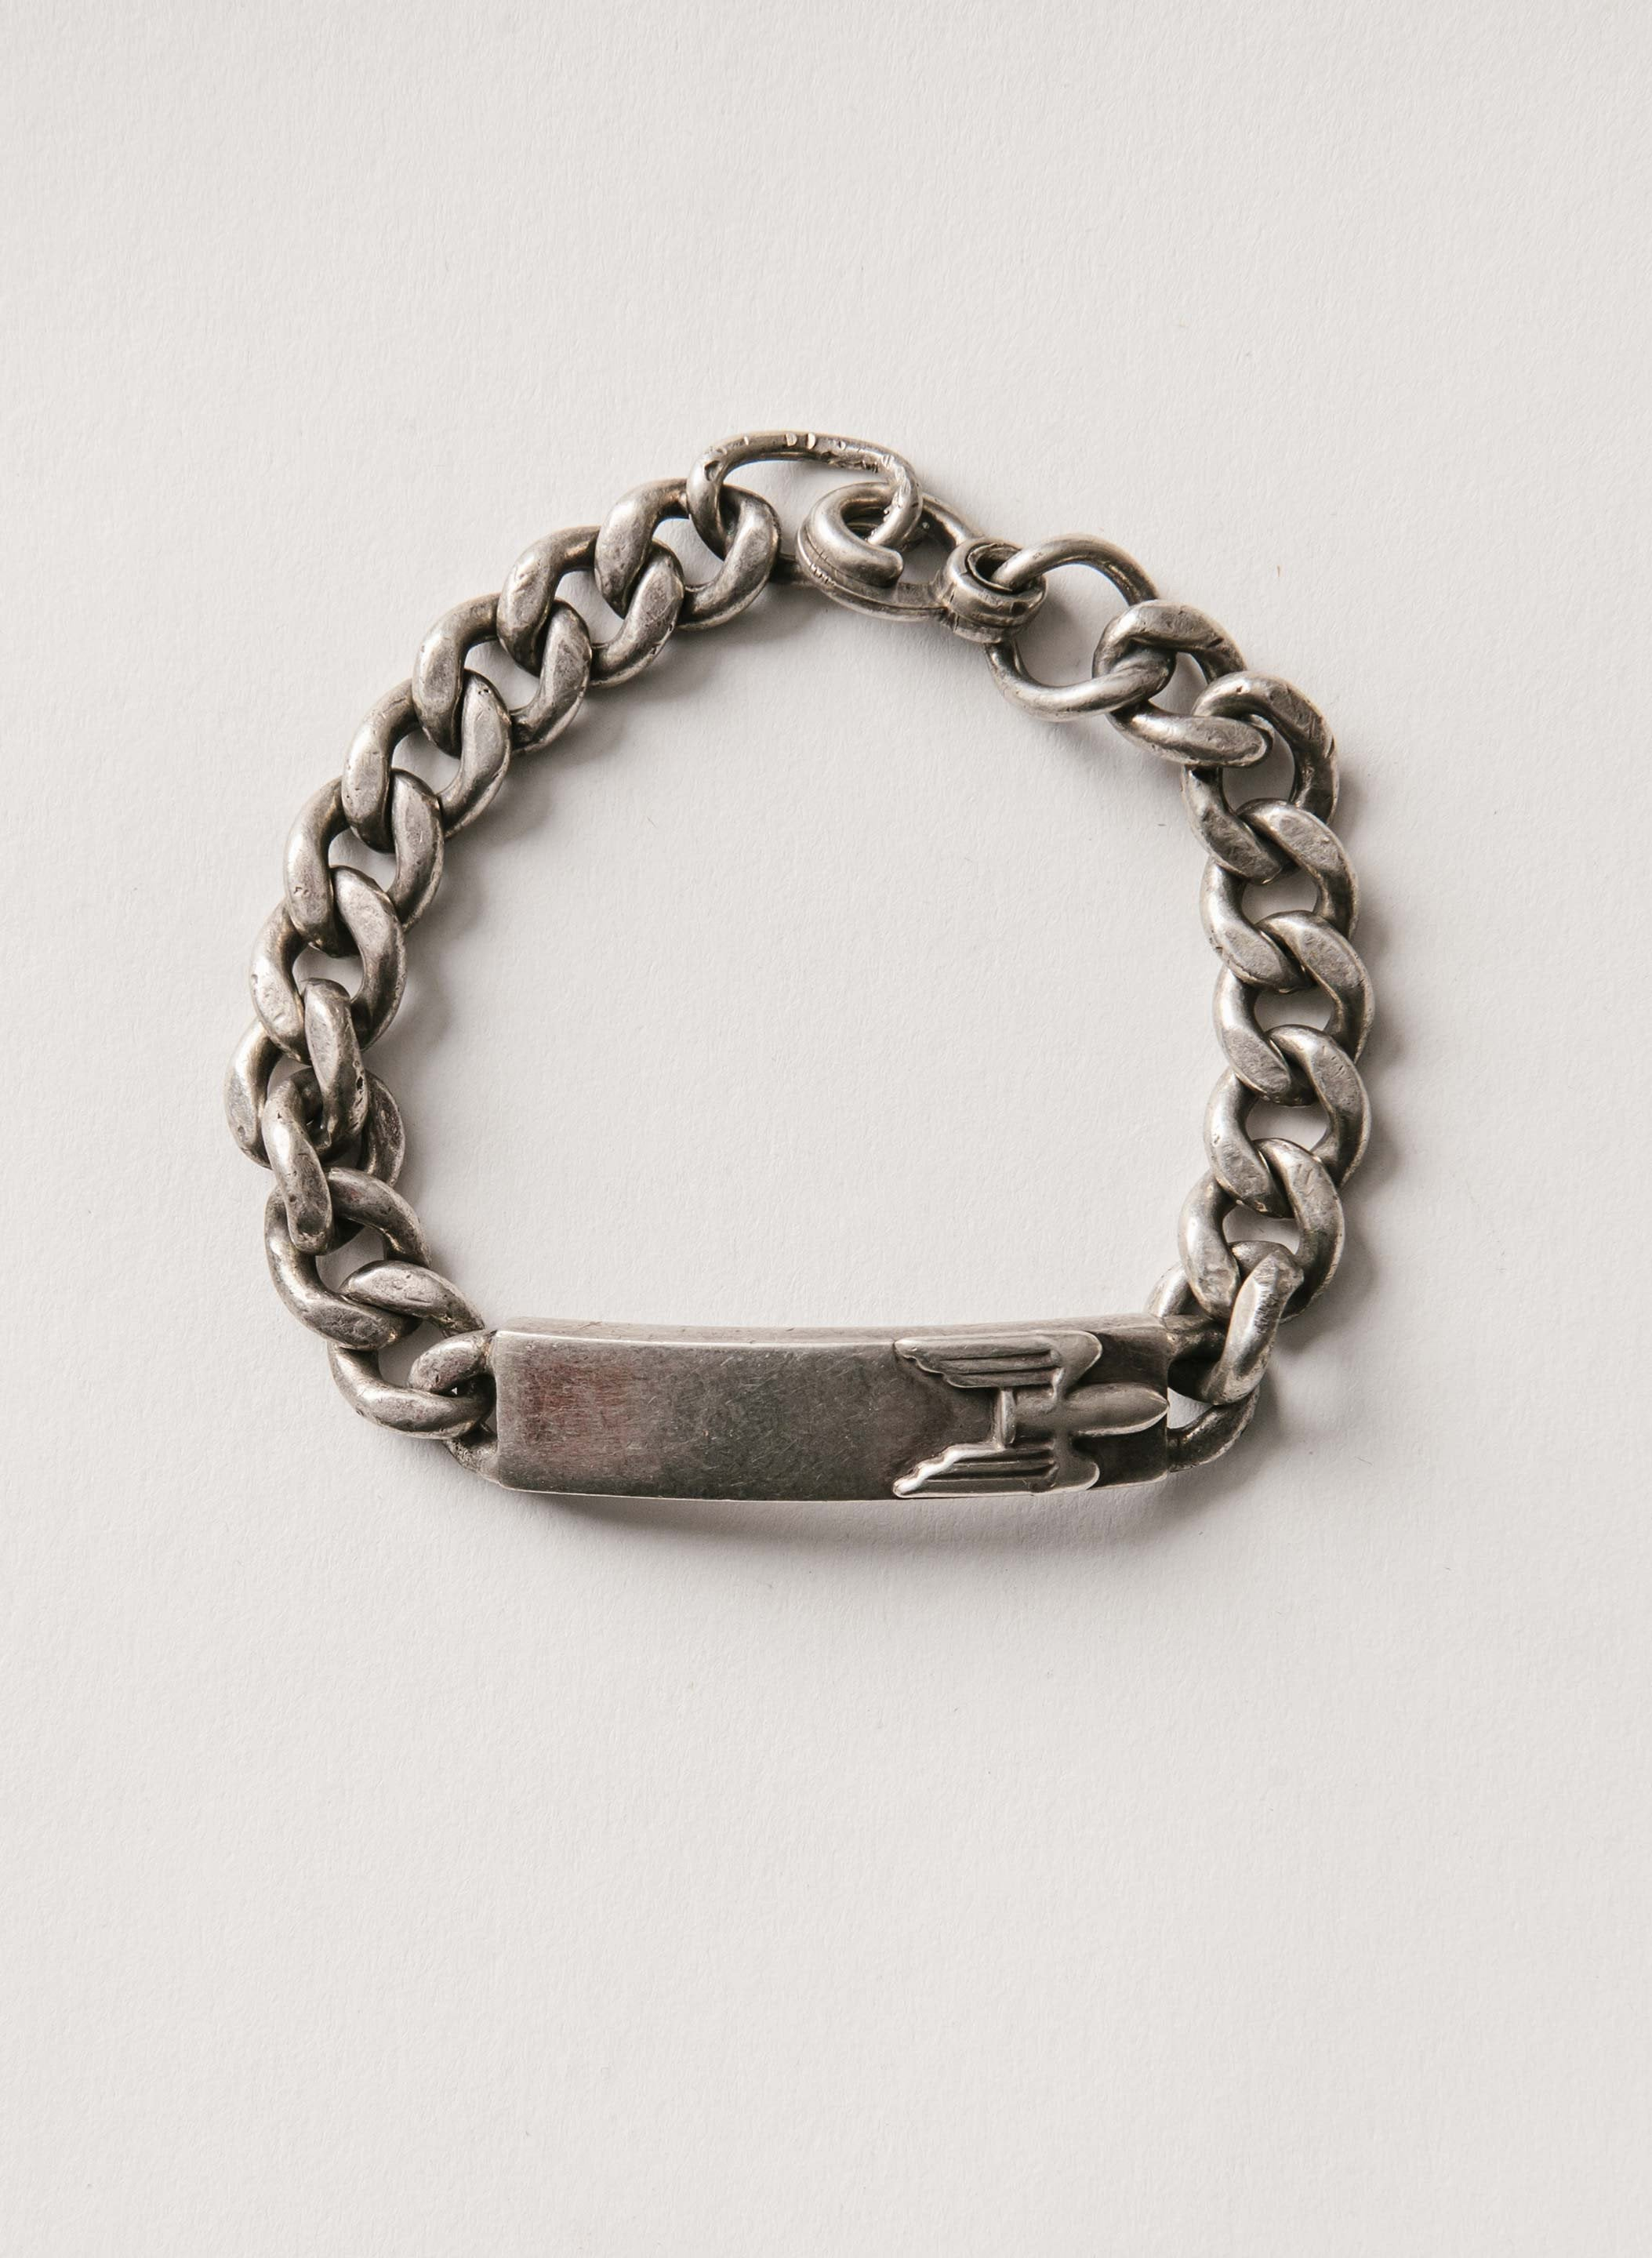 imogene + willie - wwii sterling id bracelet